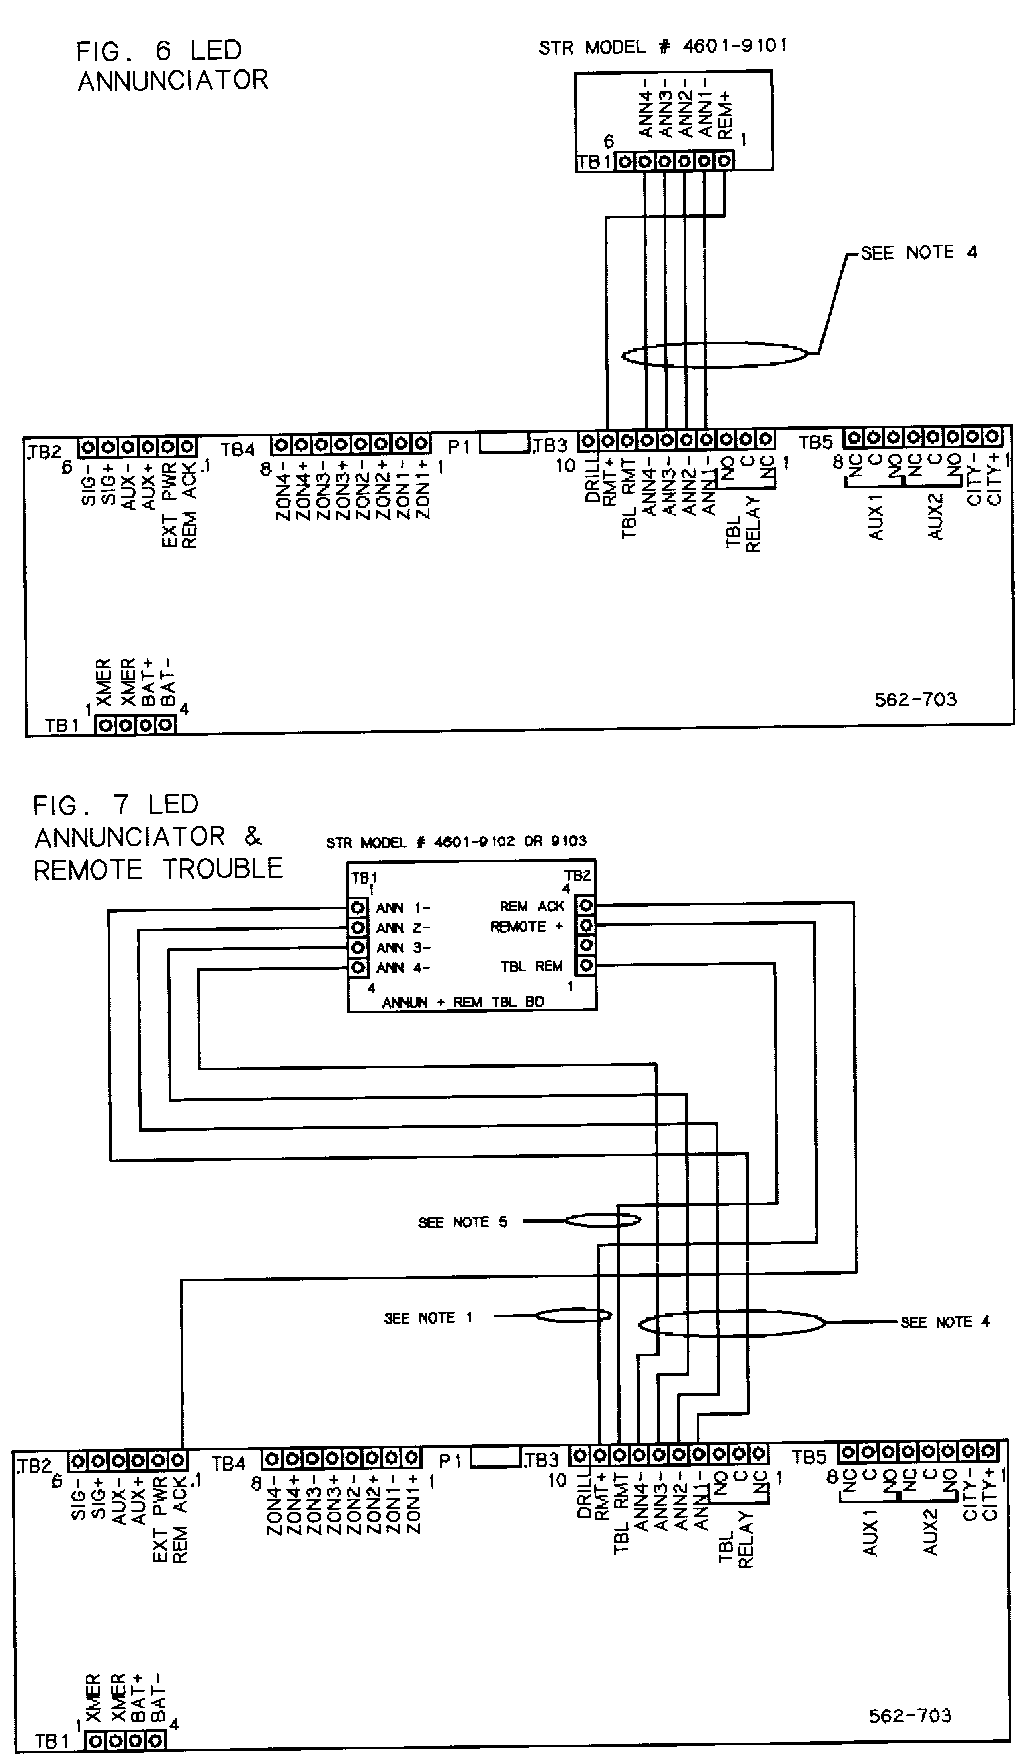 Diagram Of Simplex Great Design Wiring Anc Relay 2001 27 Images Centroid Diagrams Simple